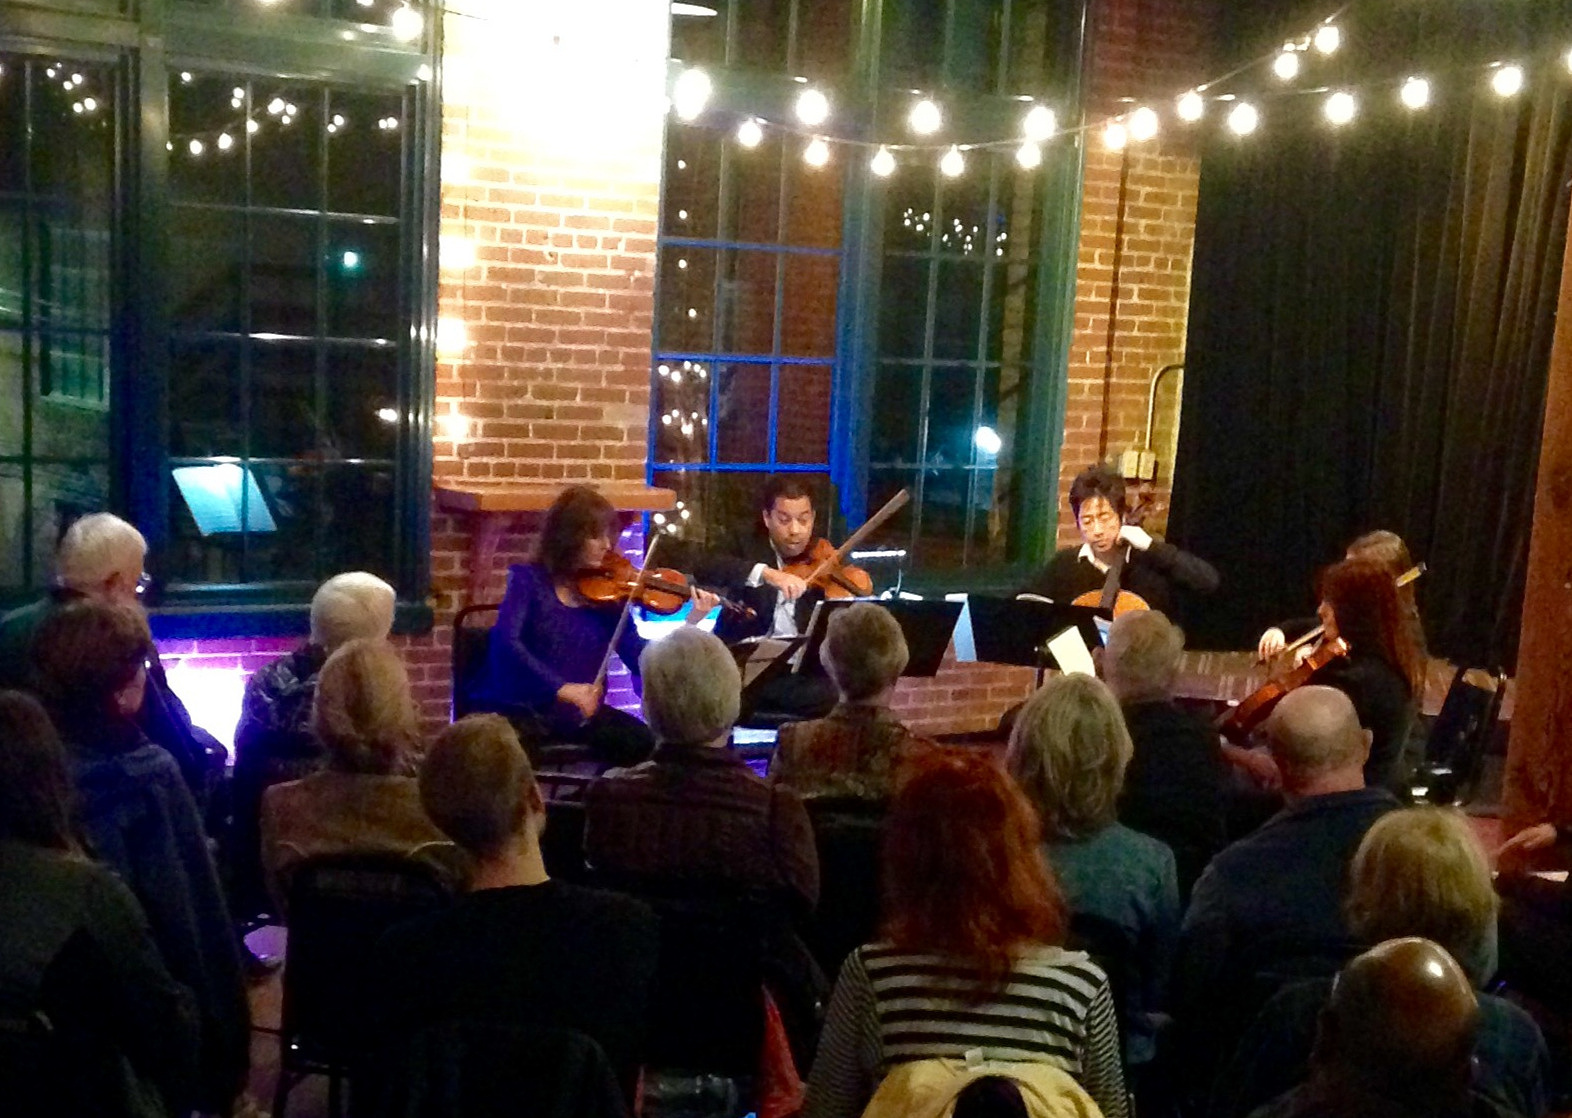 chamber project at the schlafly tap room